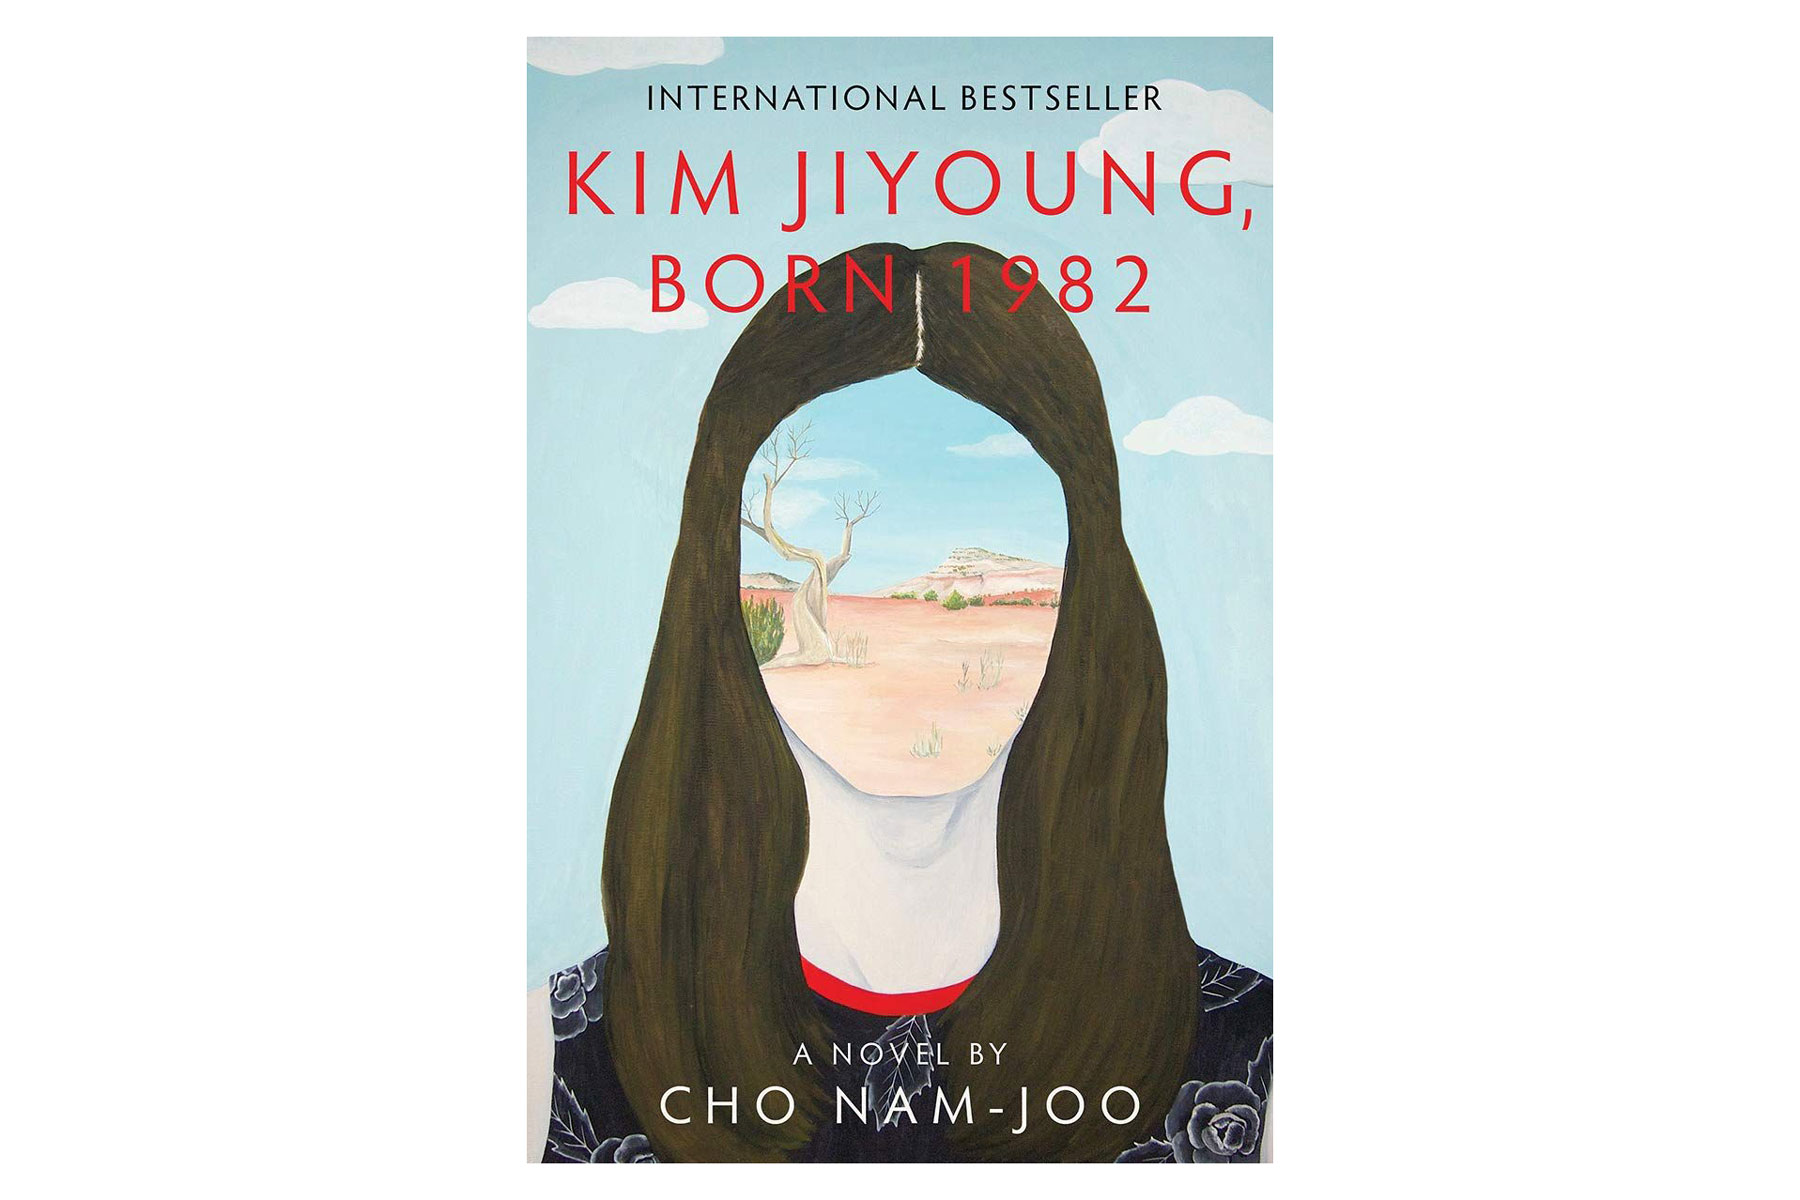 Kim Jiyoung Born 1982 book